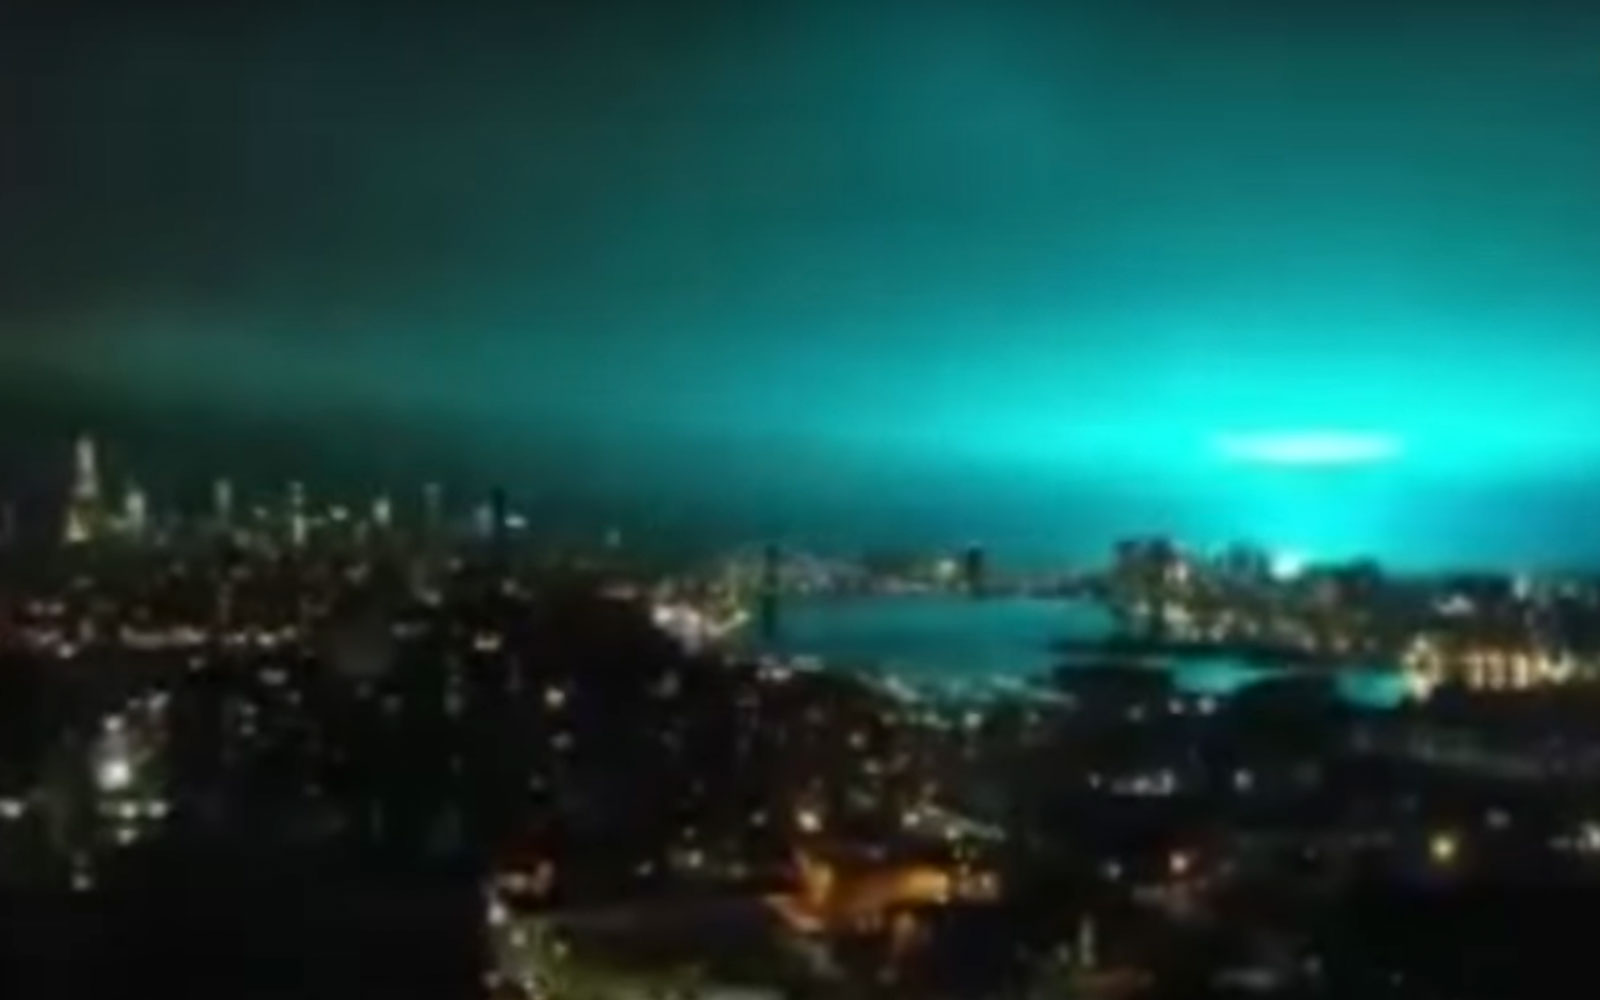 New York City blue skies from ConEd transformer explosion